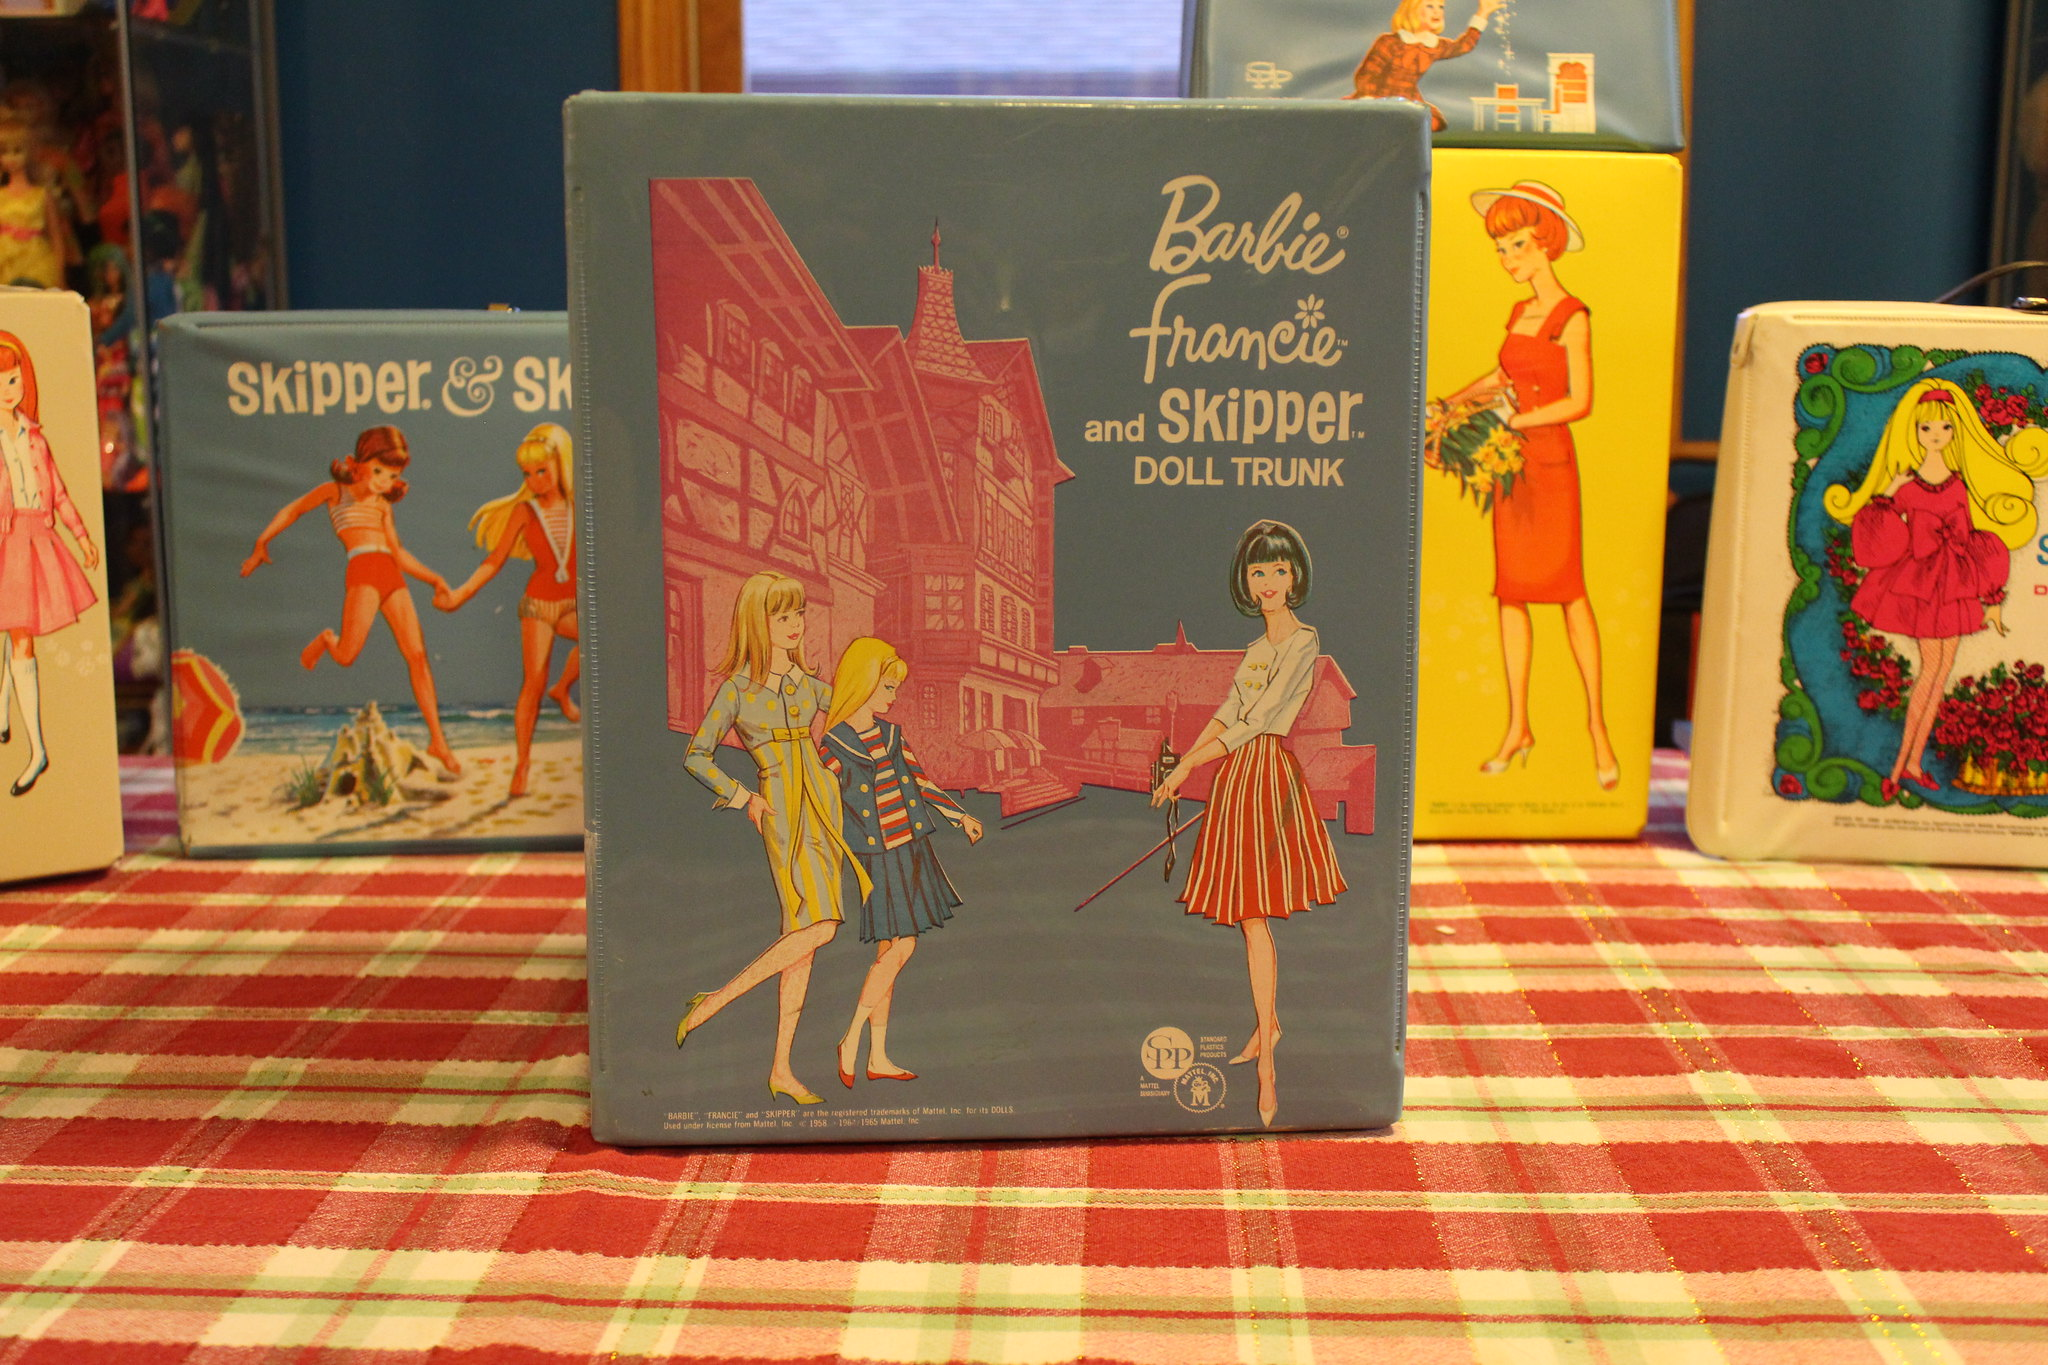 Skipper, Barbie and Francie European Travel Case